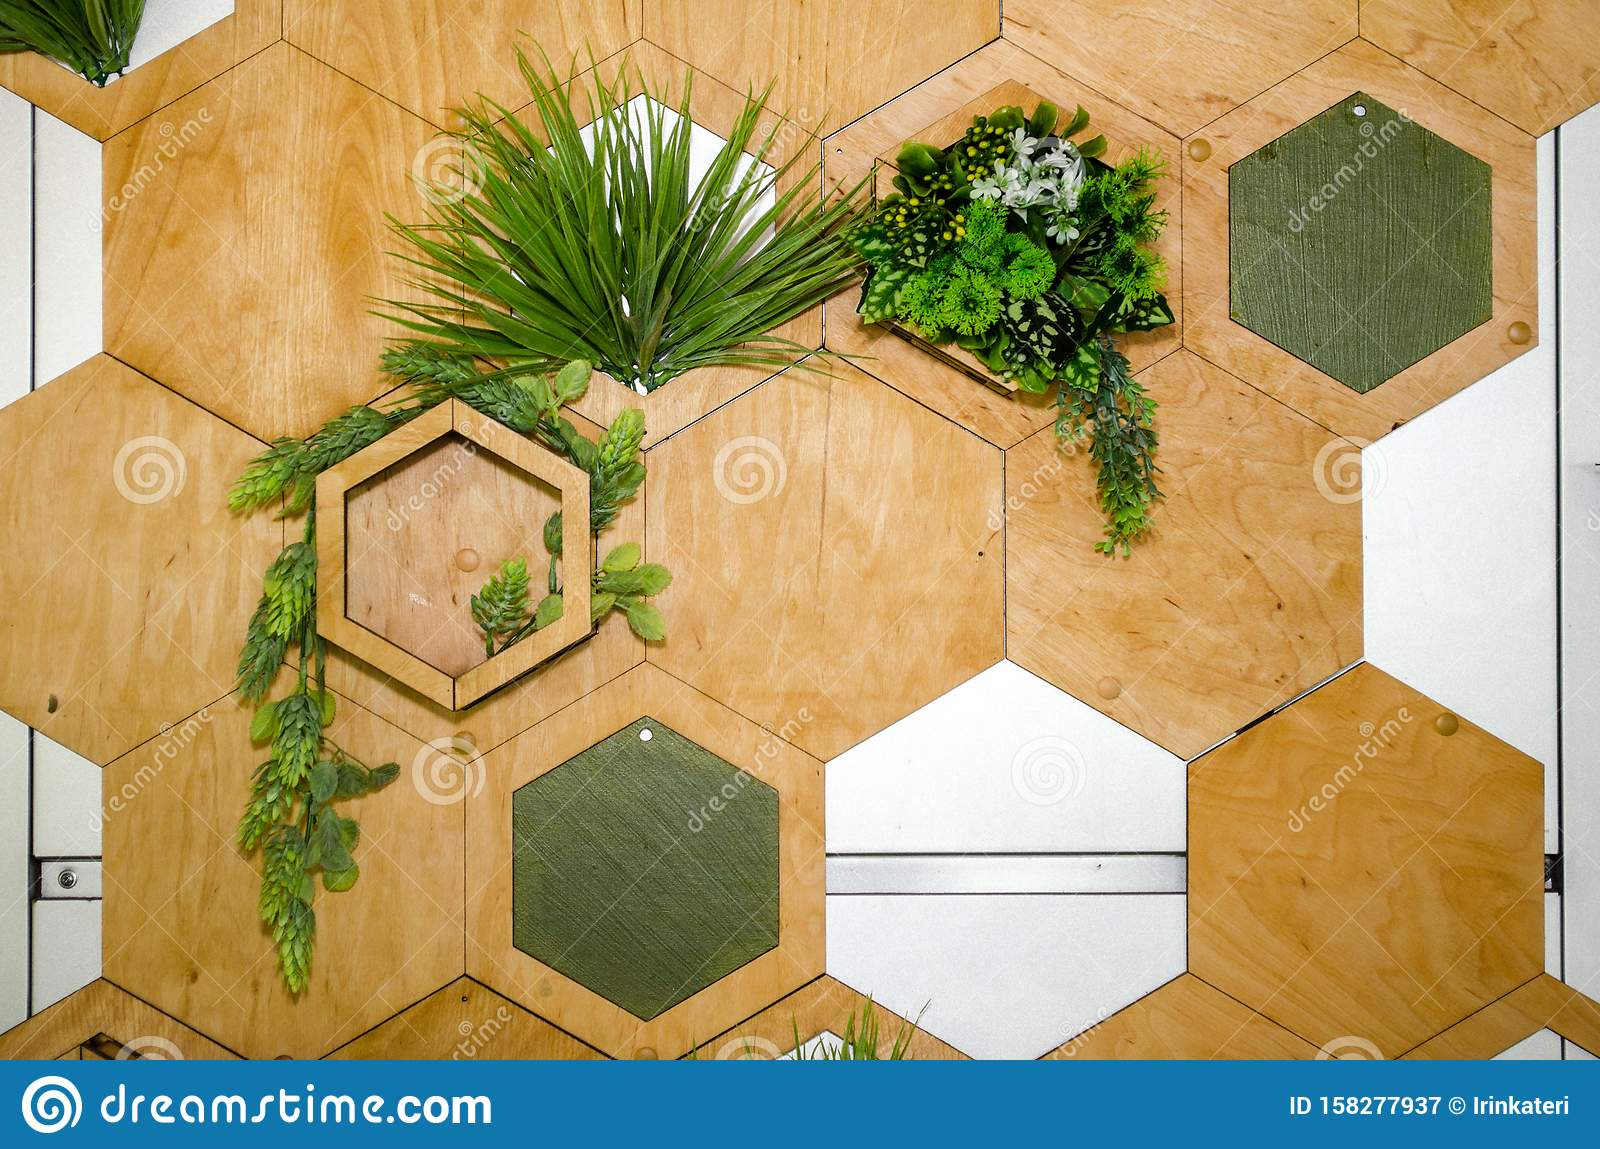 Wall Decor Hexagonal Wood Panels With Plants In Them Stock Image Image Of Decoration Indoor 158277937